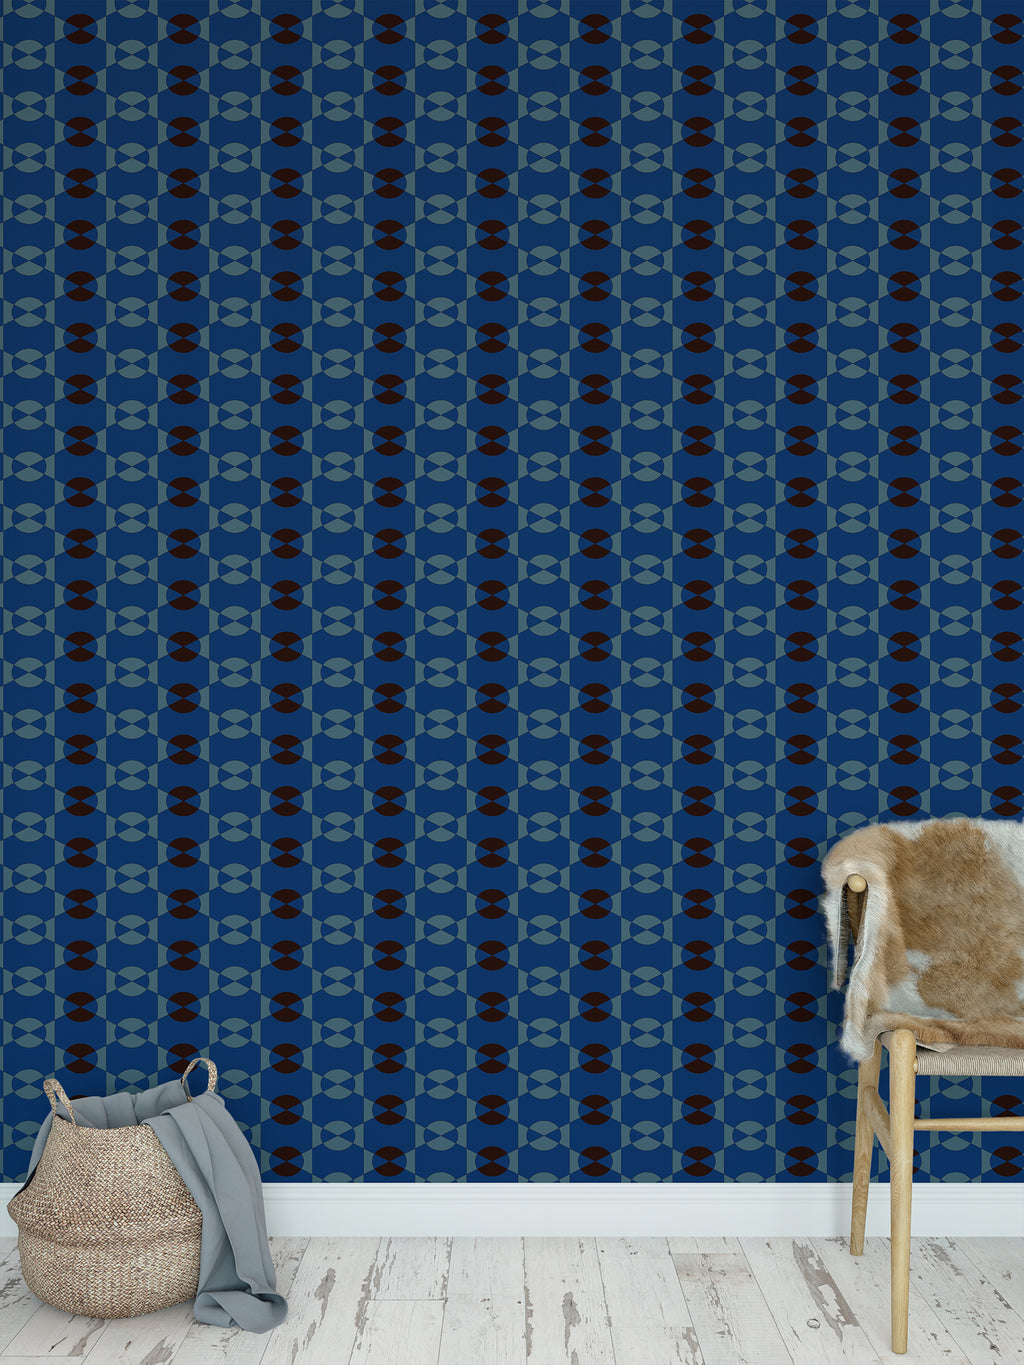 JOYFUL BLUE AND COFFEE Peel and Stick Wallpaper By Jackie Reynolds